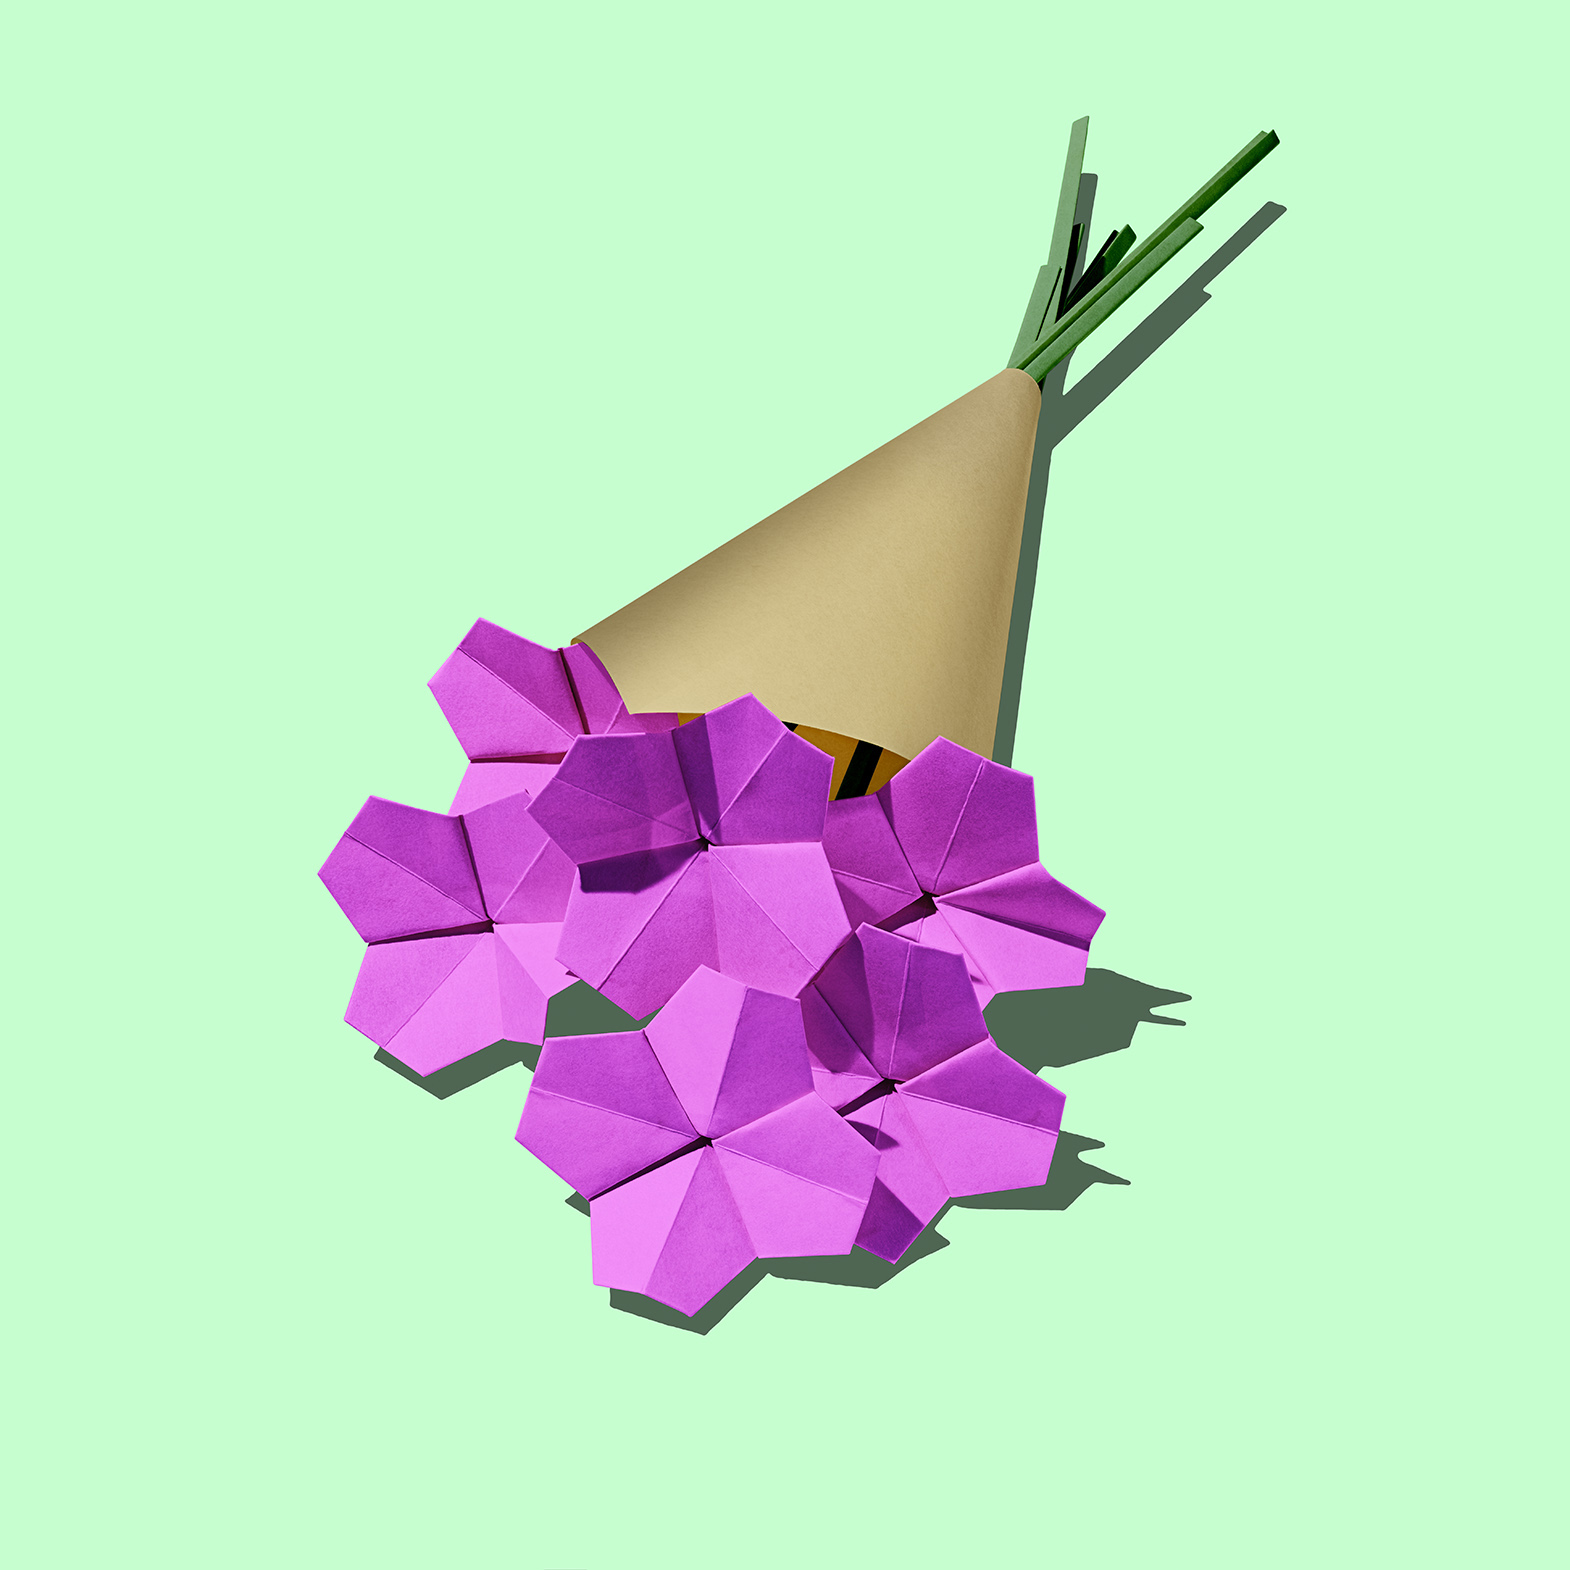 Google_Origami_Bouquet_R1_SmoothBG_1570pxx